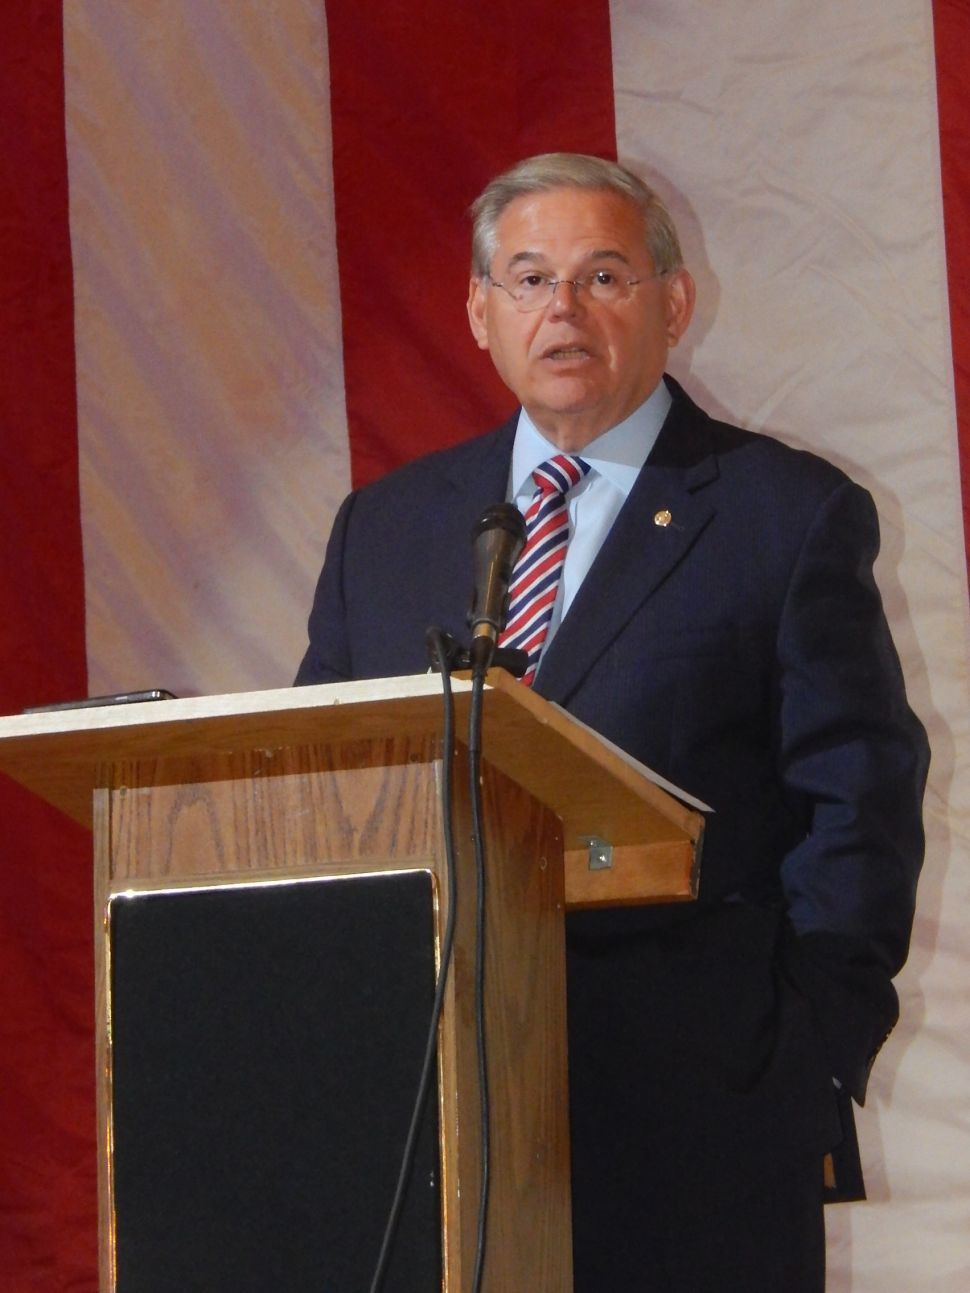 Report: Menendez wants Justice Department to examine possibility that Cuban government smeared him